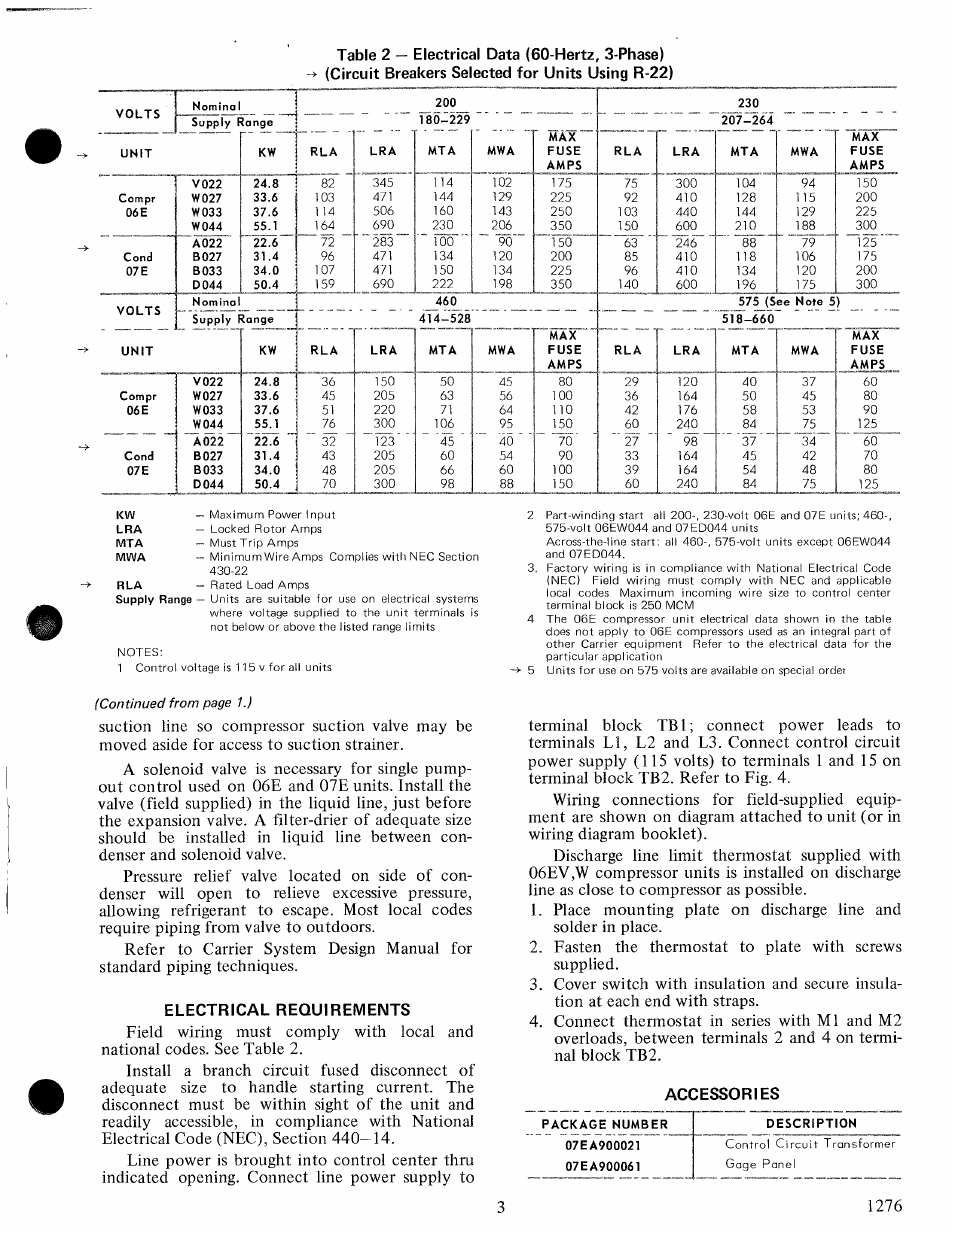 Unique 14 3 wire amps composition electric circuit diagrams electrical requirements accessories carrier 06e user manual greentooth Images